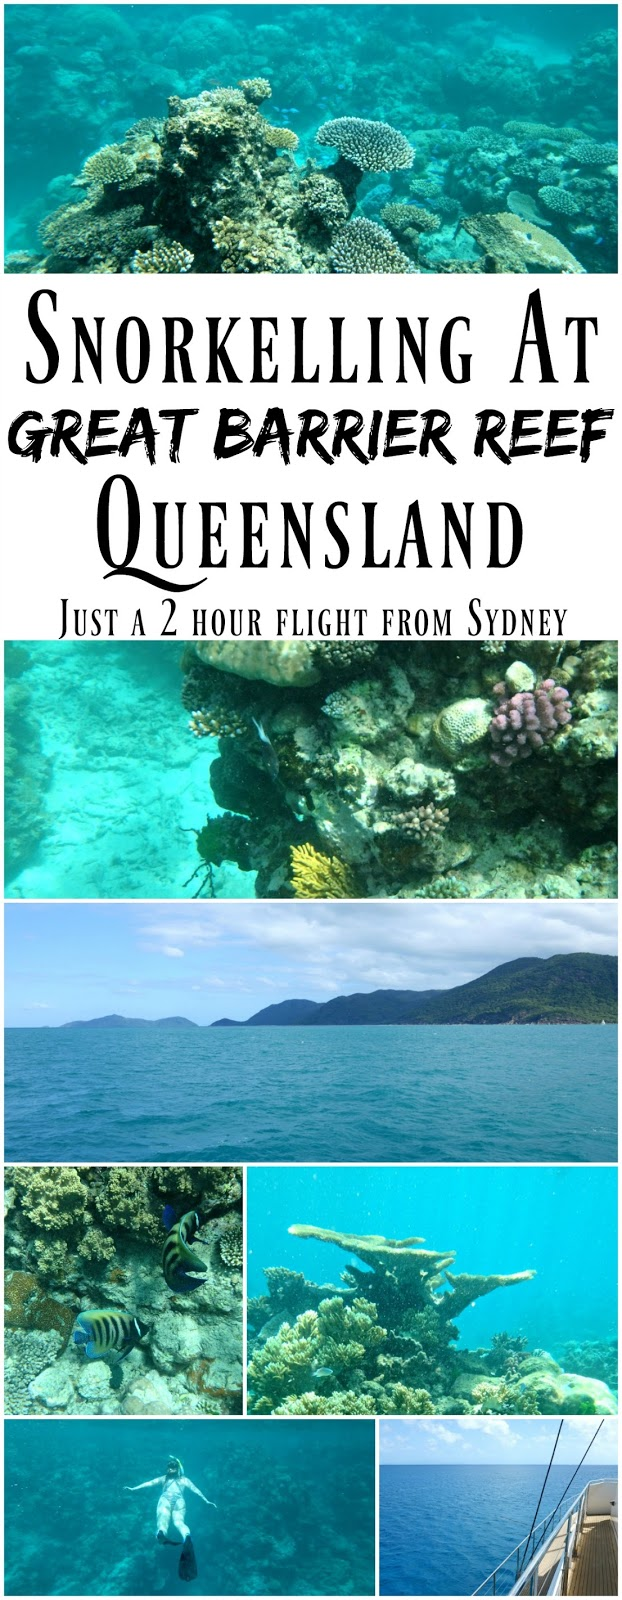 Pin For Later: Fly from Sydney to Cairns and spend a weekend snorkelling on the famous Great Barrier Reef! Cairns is just a two hour flight from Sydney, and you can book a day trip out to the reef for snorkelling. The world underwater is incredible and very varied depending on which reef you visit!